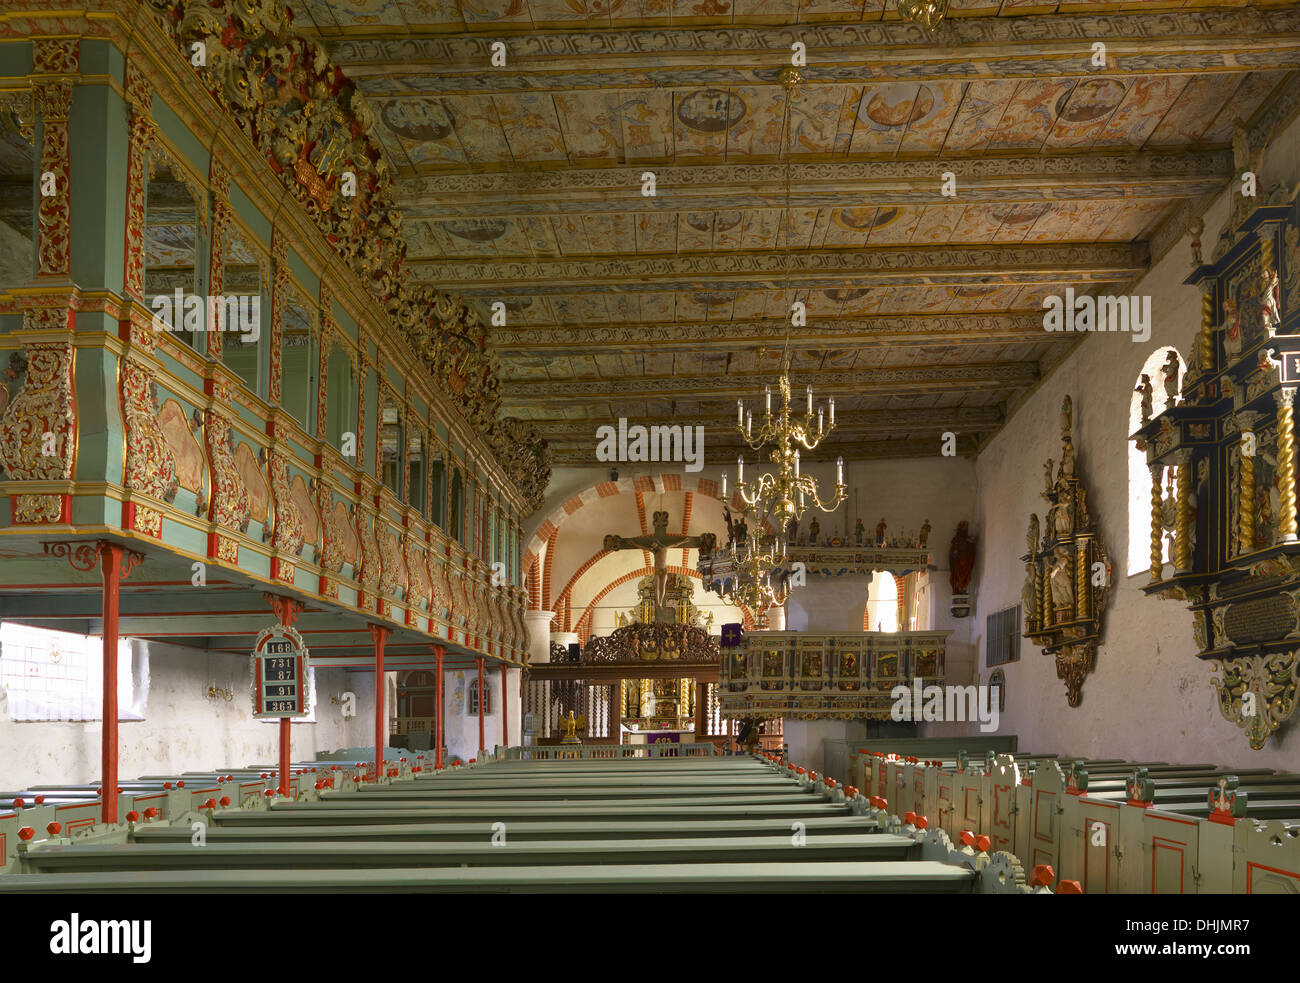 Church with renaissance facilities in Lüdingworth, Lower Saxony, Germany - Stock Image